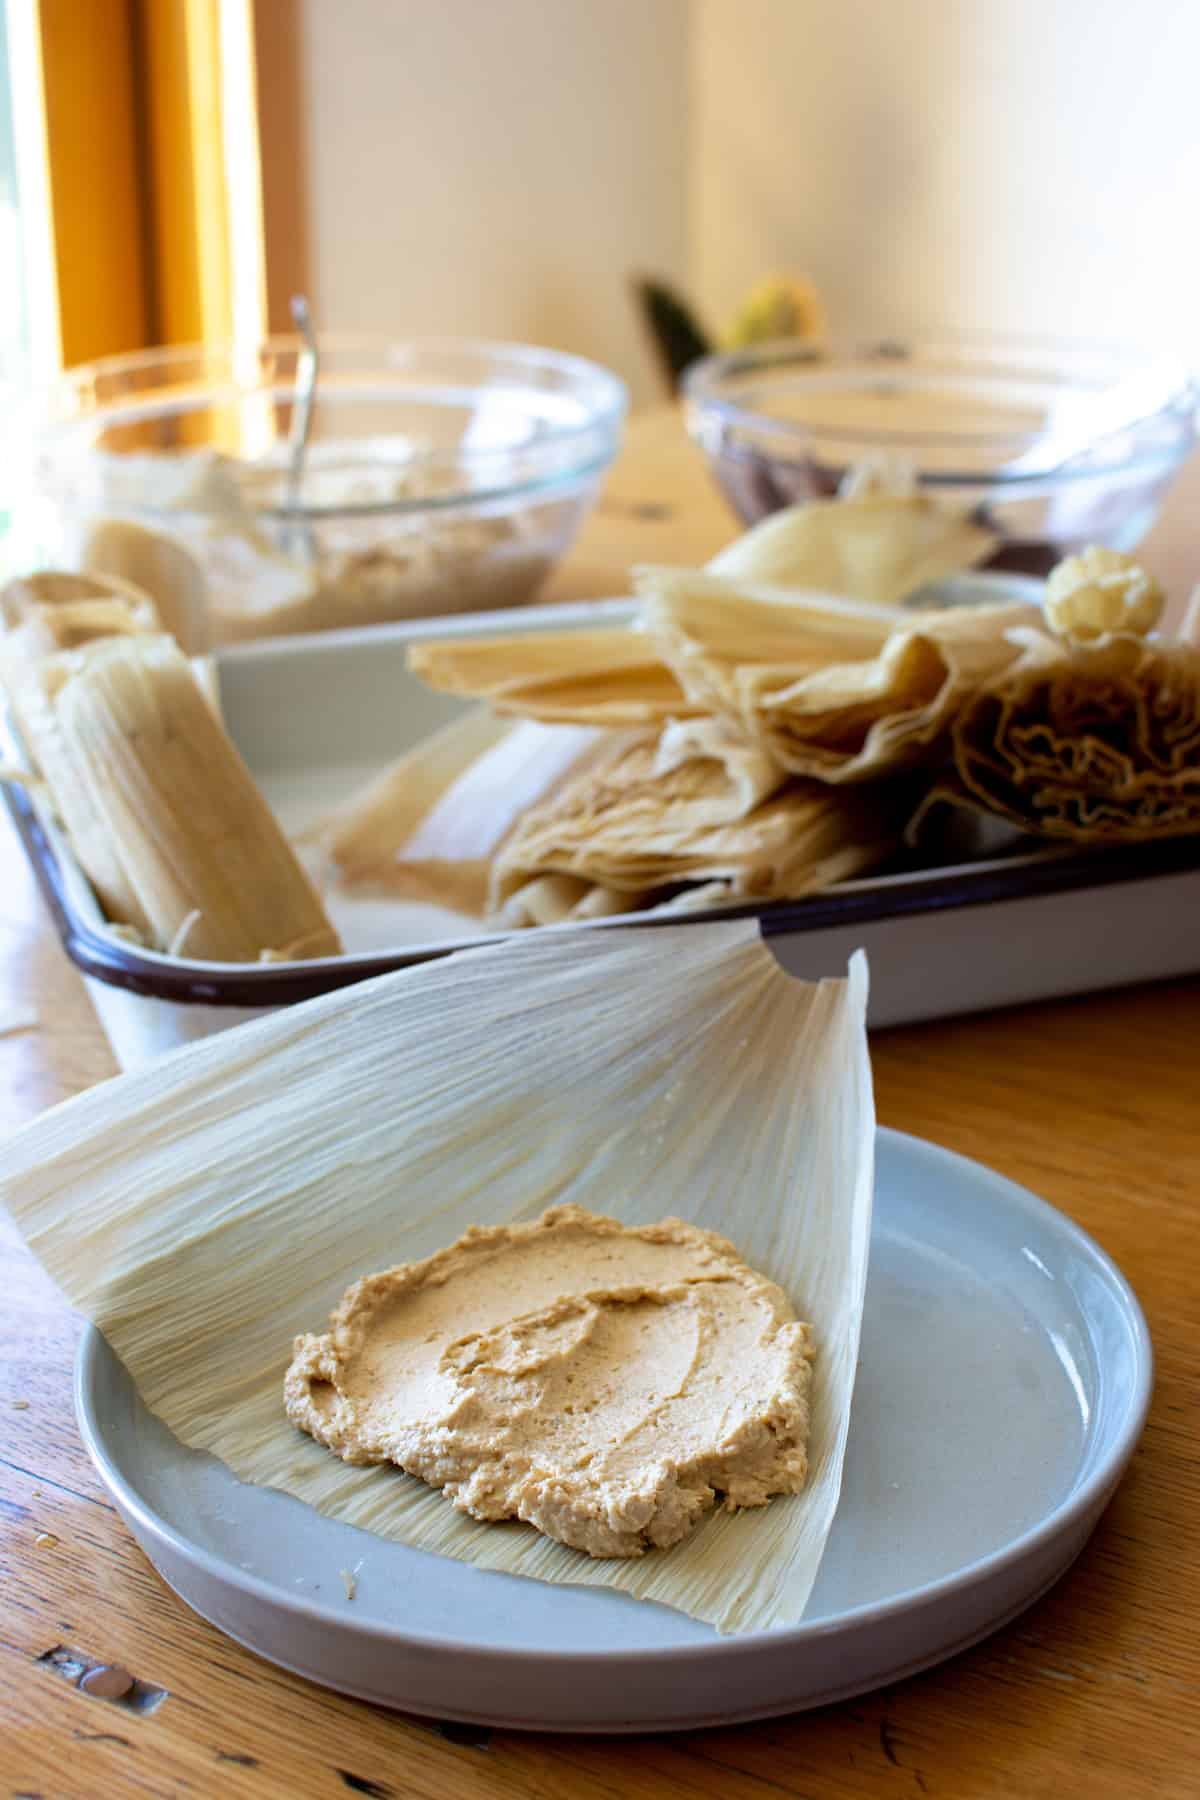 A corn husk sitting on a white plate on a wood table with masa dough spread over it and a white dish of corn husks in the background.